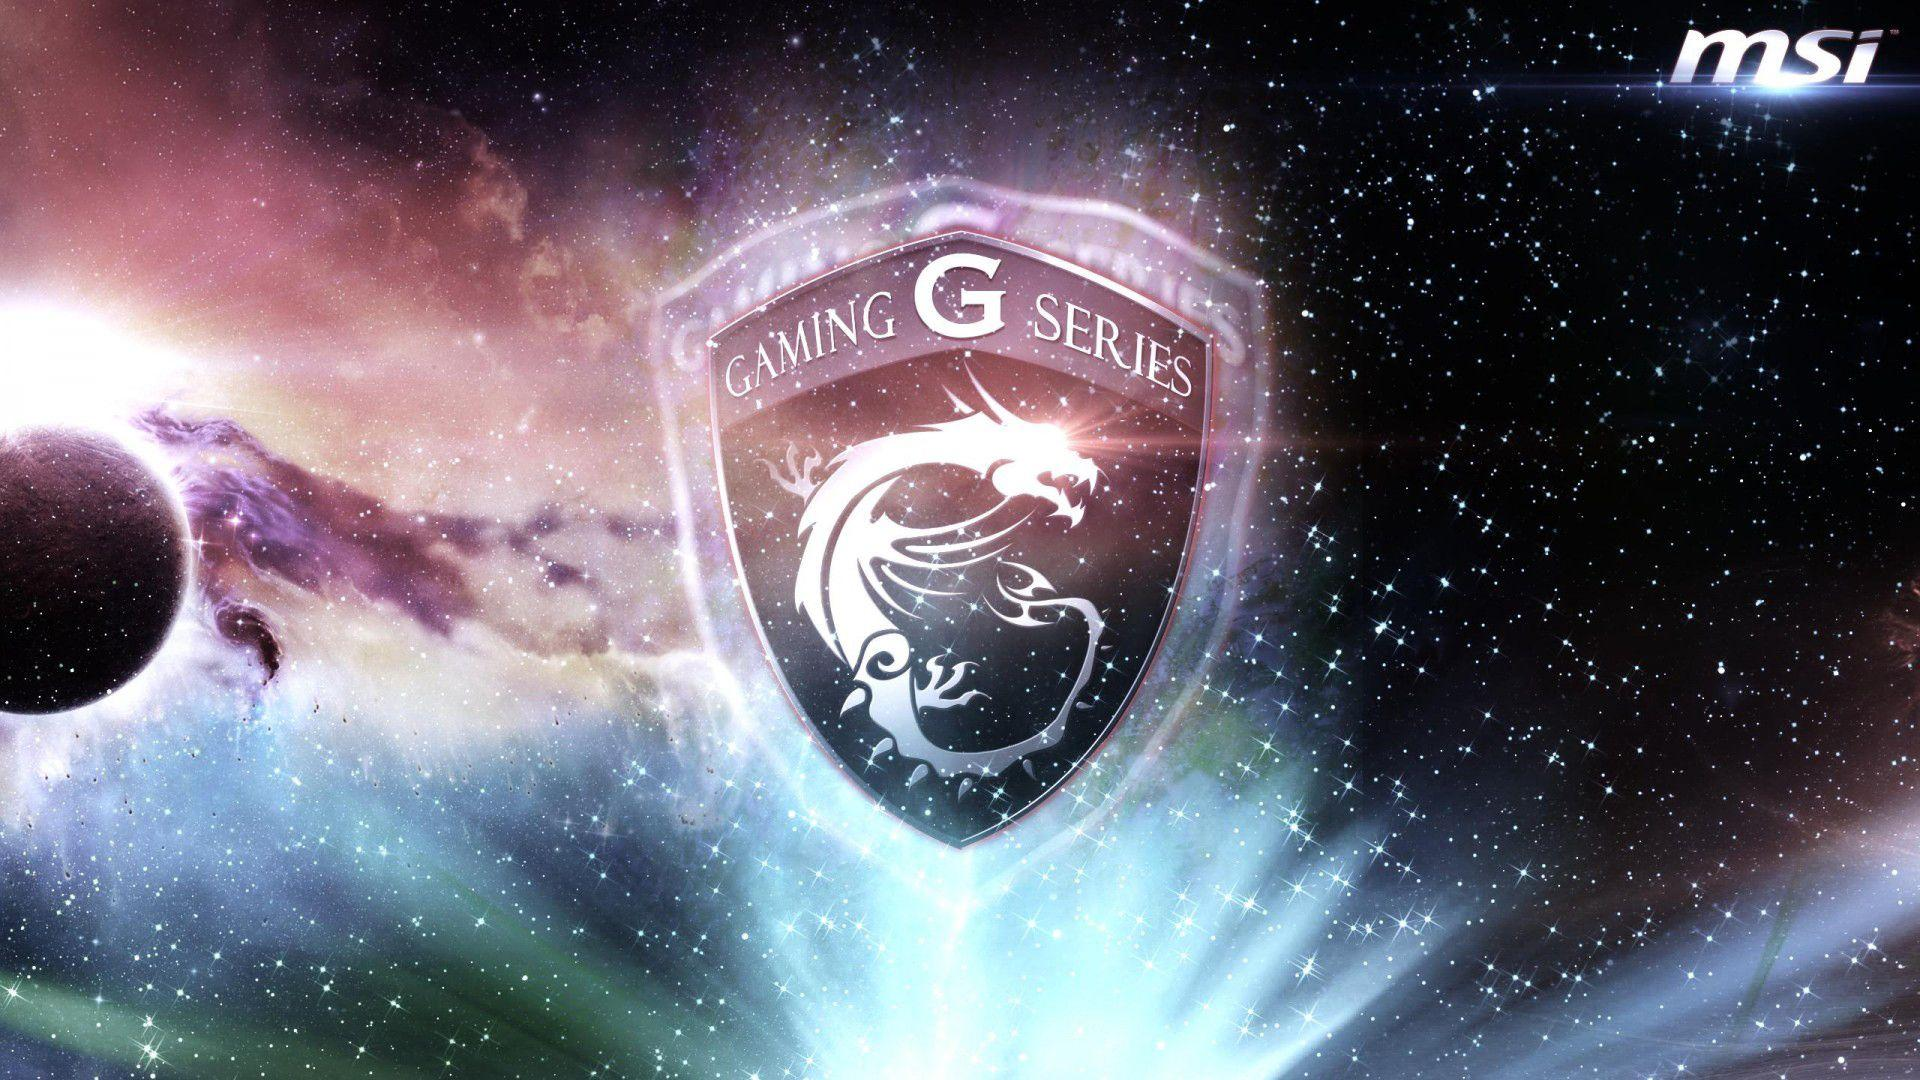 10 New Msi Gaming Series Wallpaper Full Hd 1920 1080 For: MSI Gaming Wallpapers